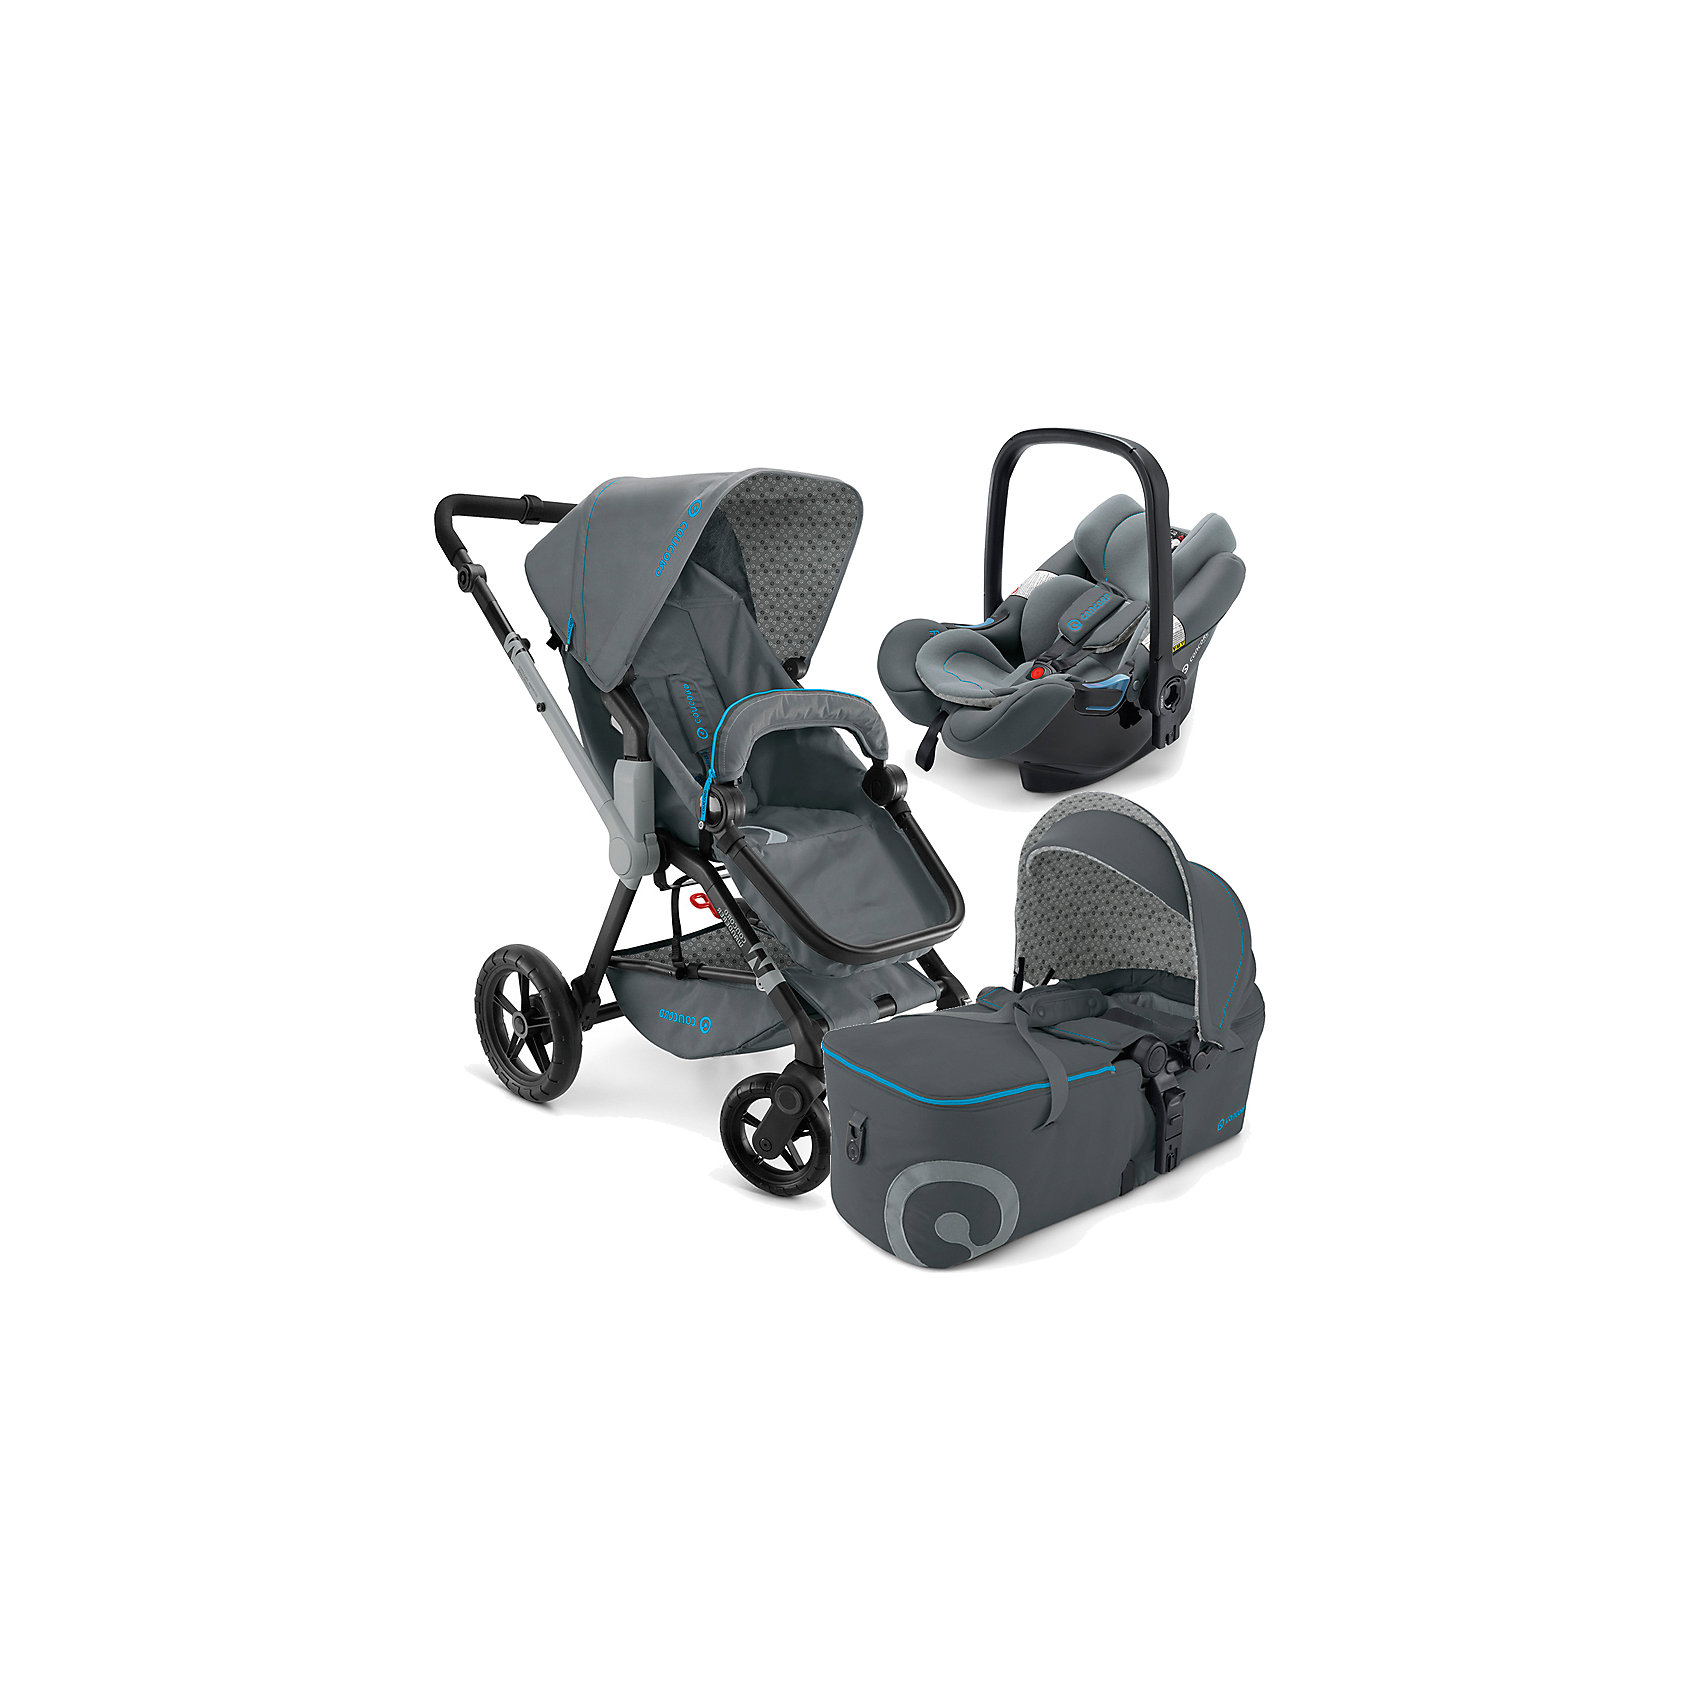 Concord Коляска 3 в 1 Wanderer Mobility Set, Concord, Stone Grey 2015